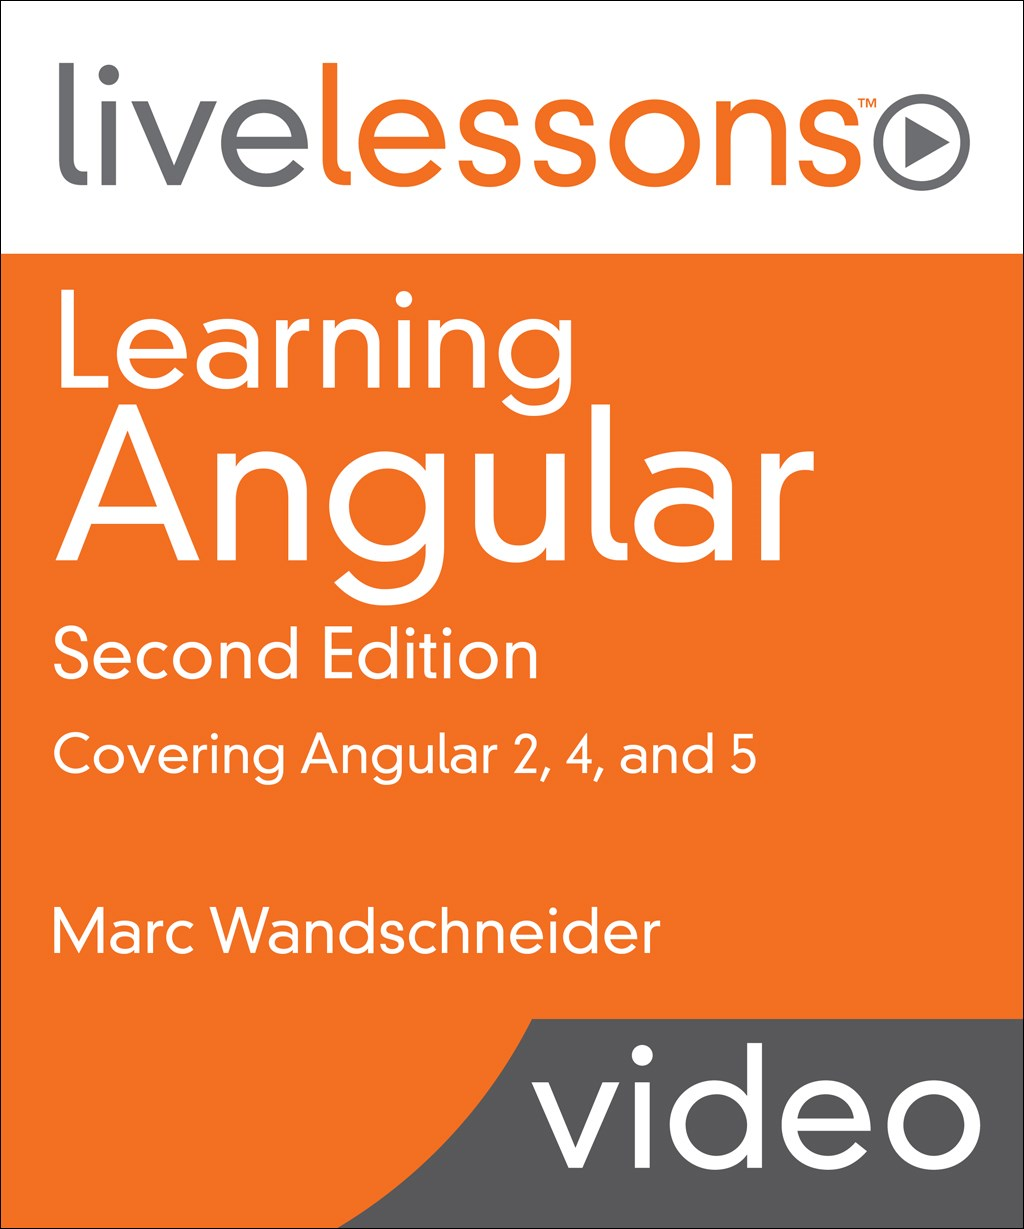 Learning Angular, Second Edition